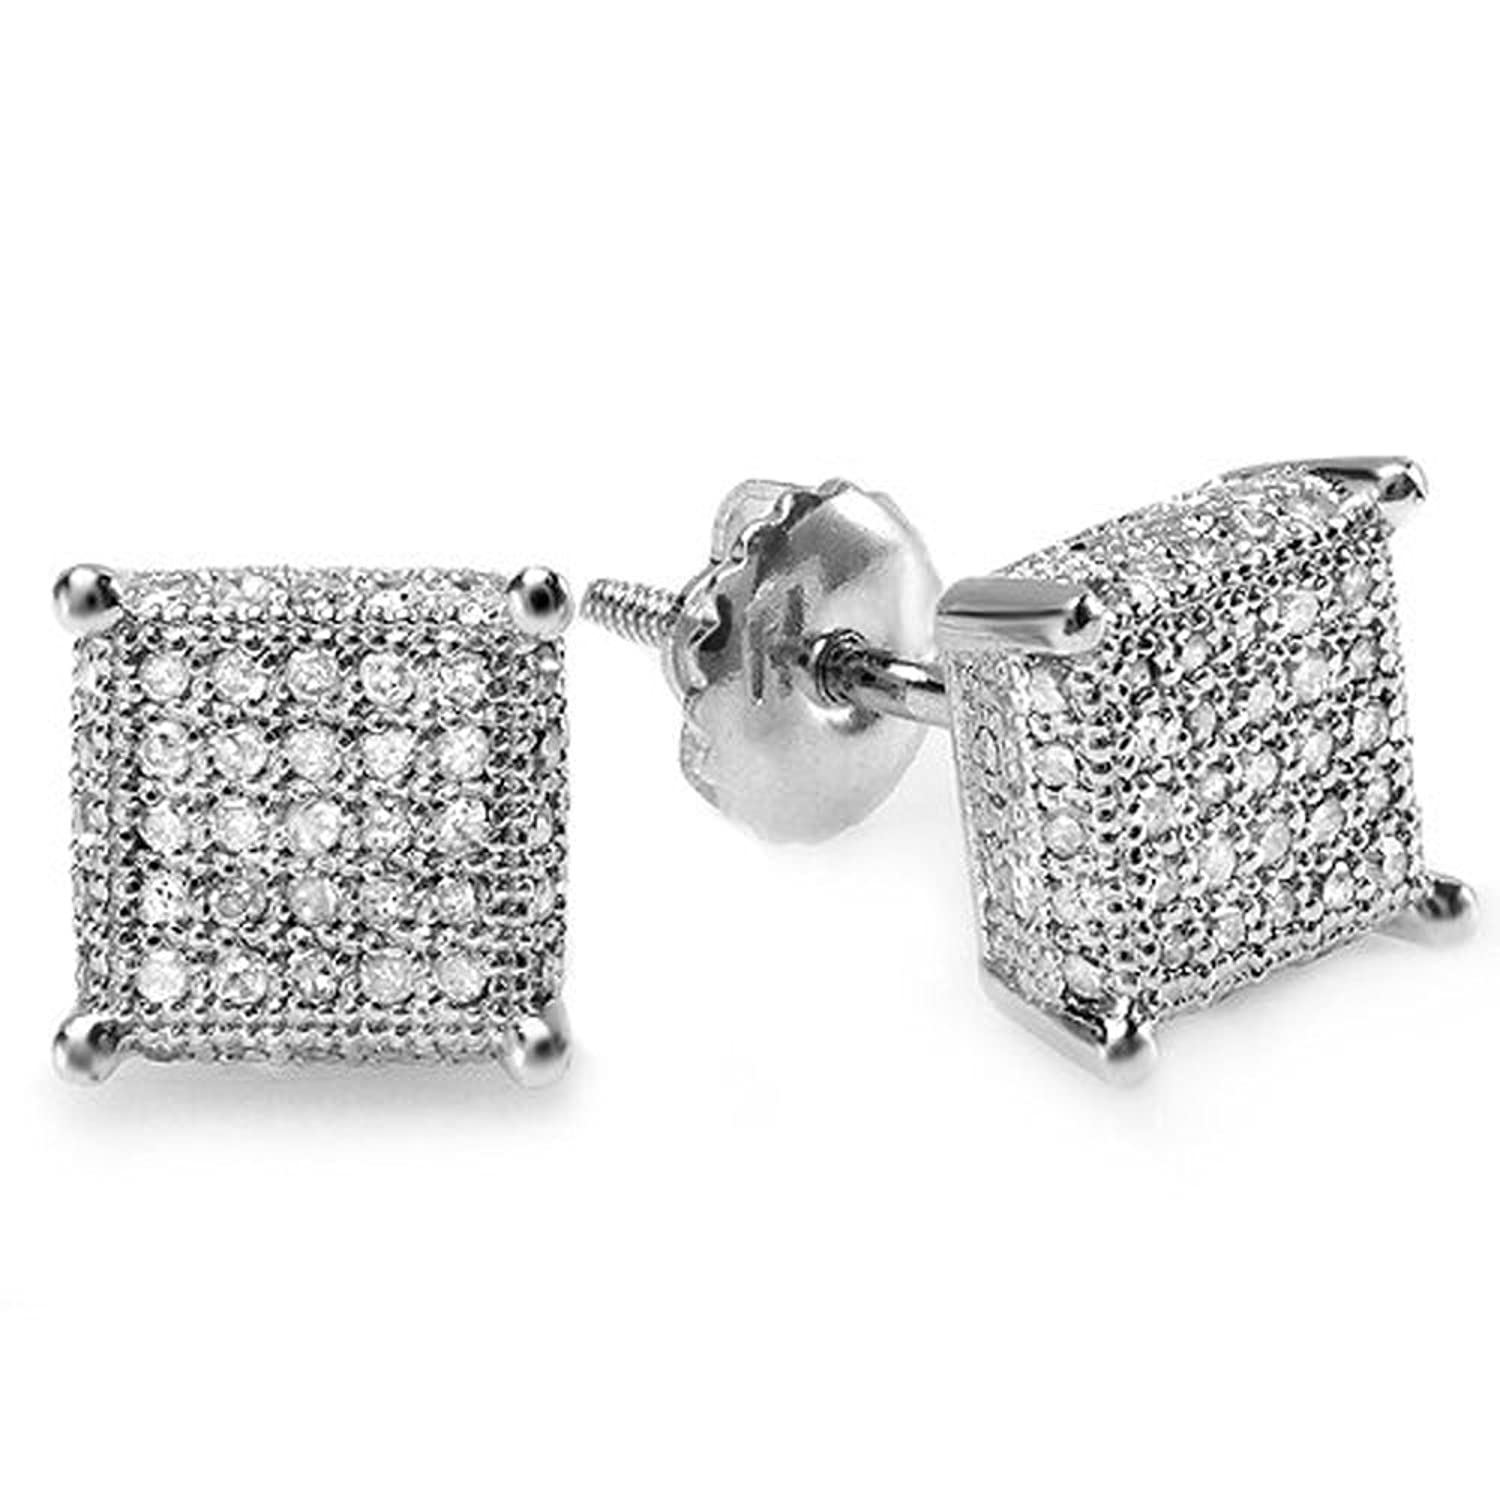 diamond earrings scale wwake a step two true products